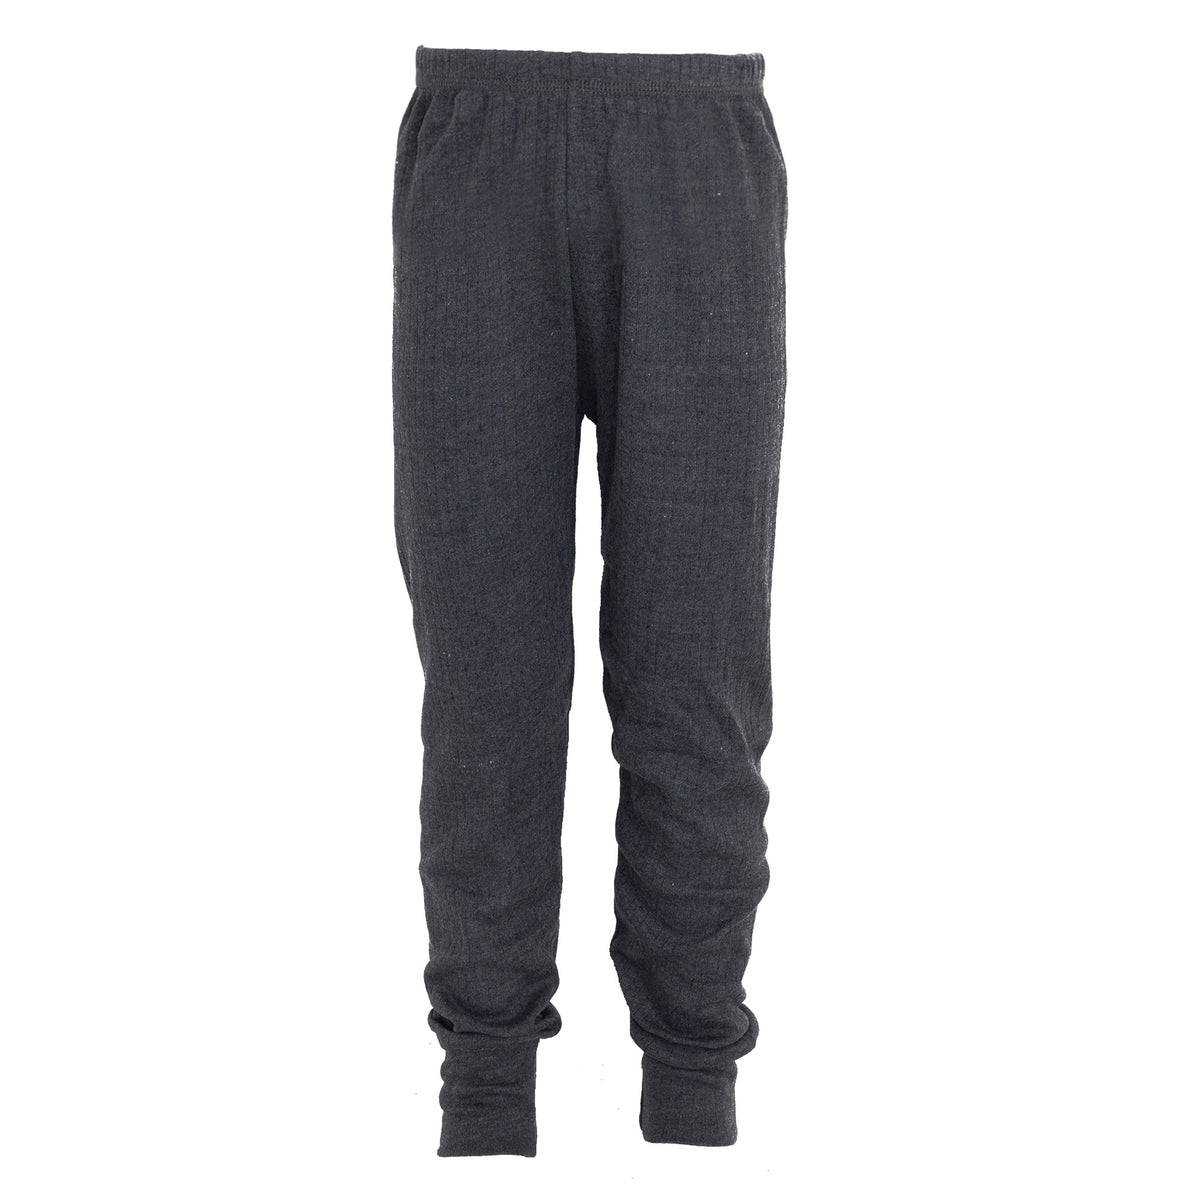 Hip: 21.5 inch, 55 cm Charcoal Floso FLOSO/® Unisex Childrens//Kids Thermal Underwear Long Johns//Pants Age 6-8